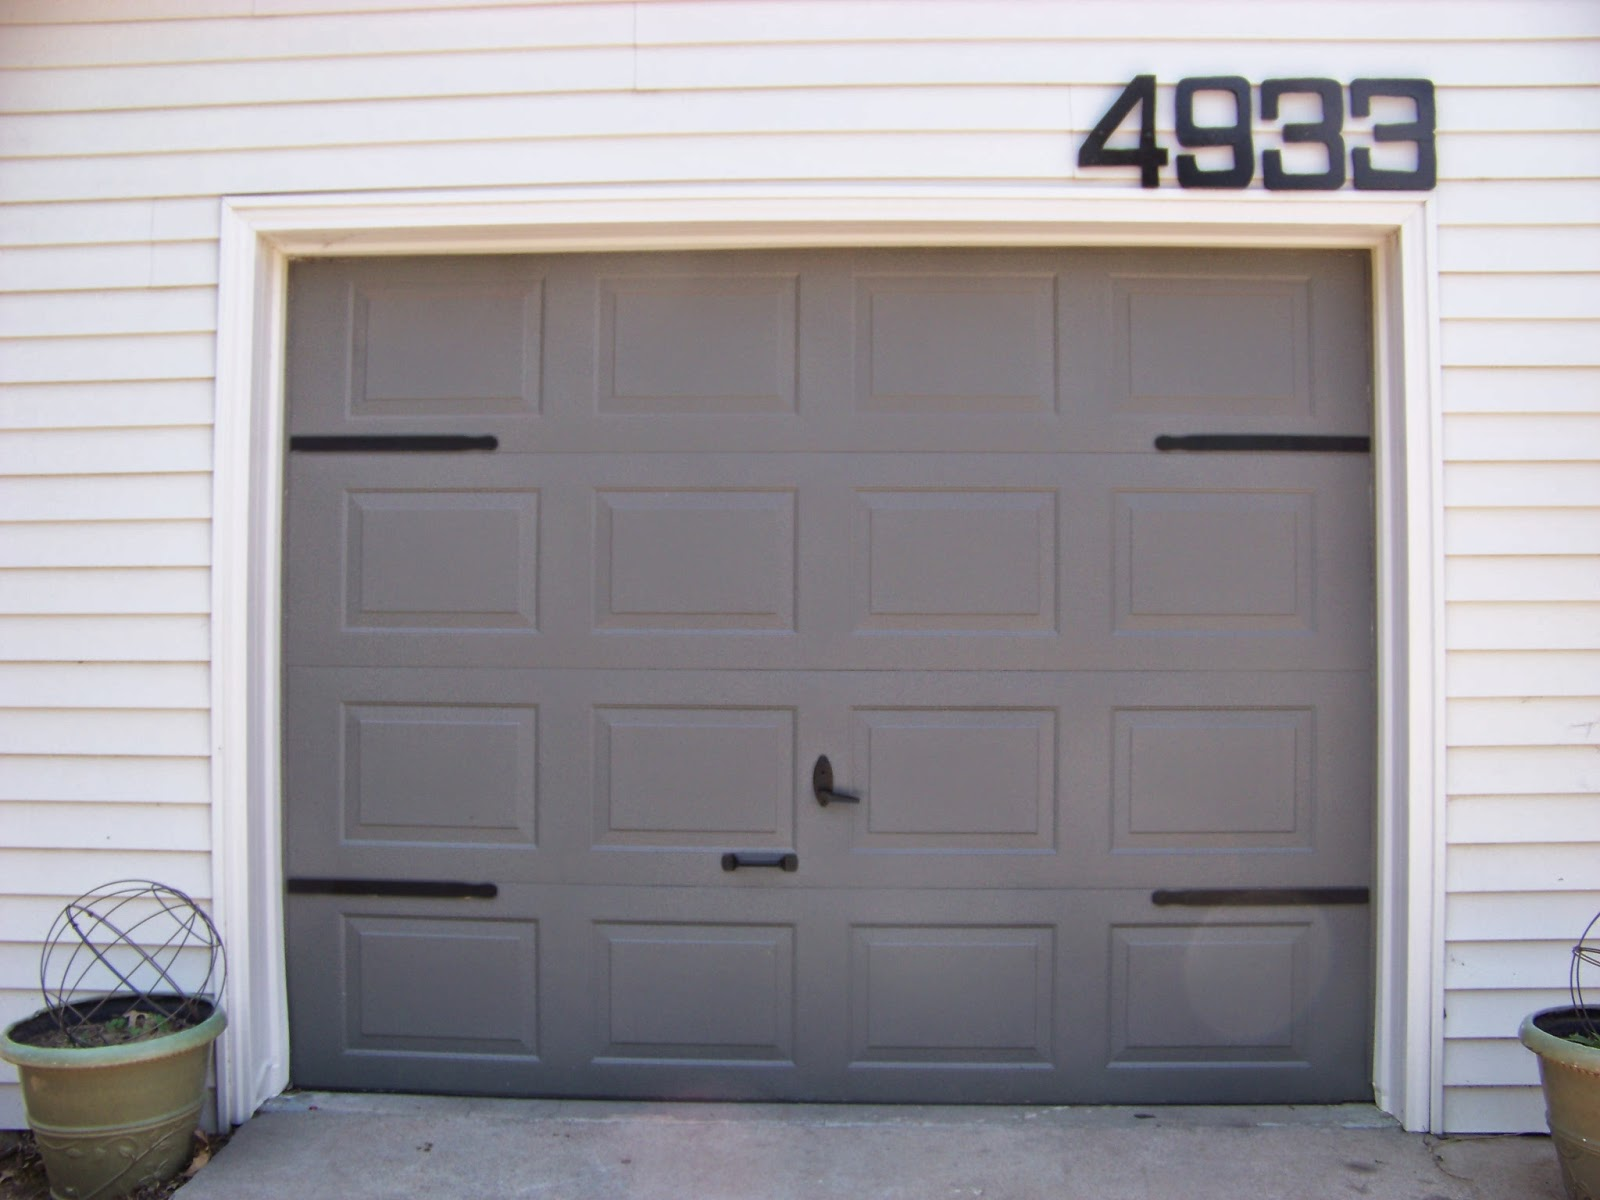 Doors To Garage: 8 DIY Garage Door Updates